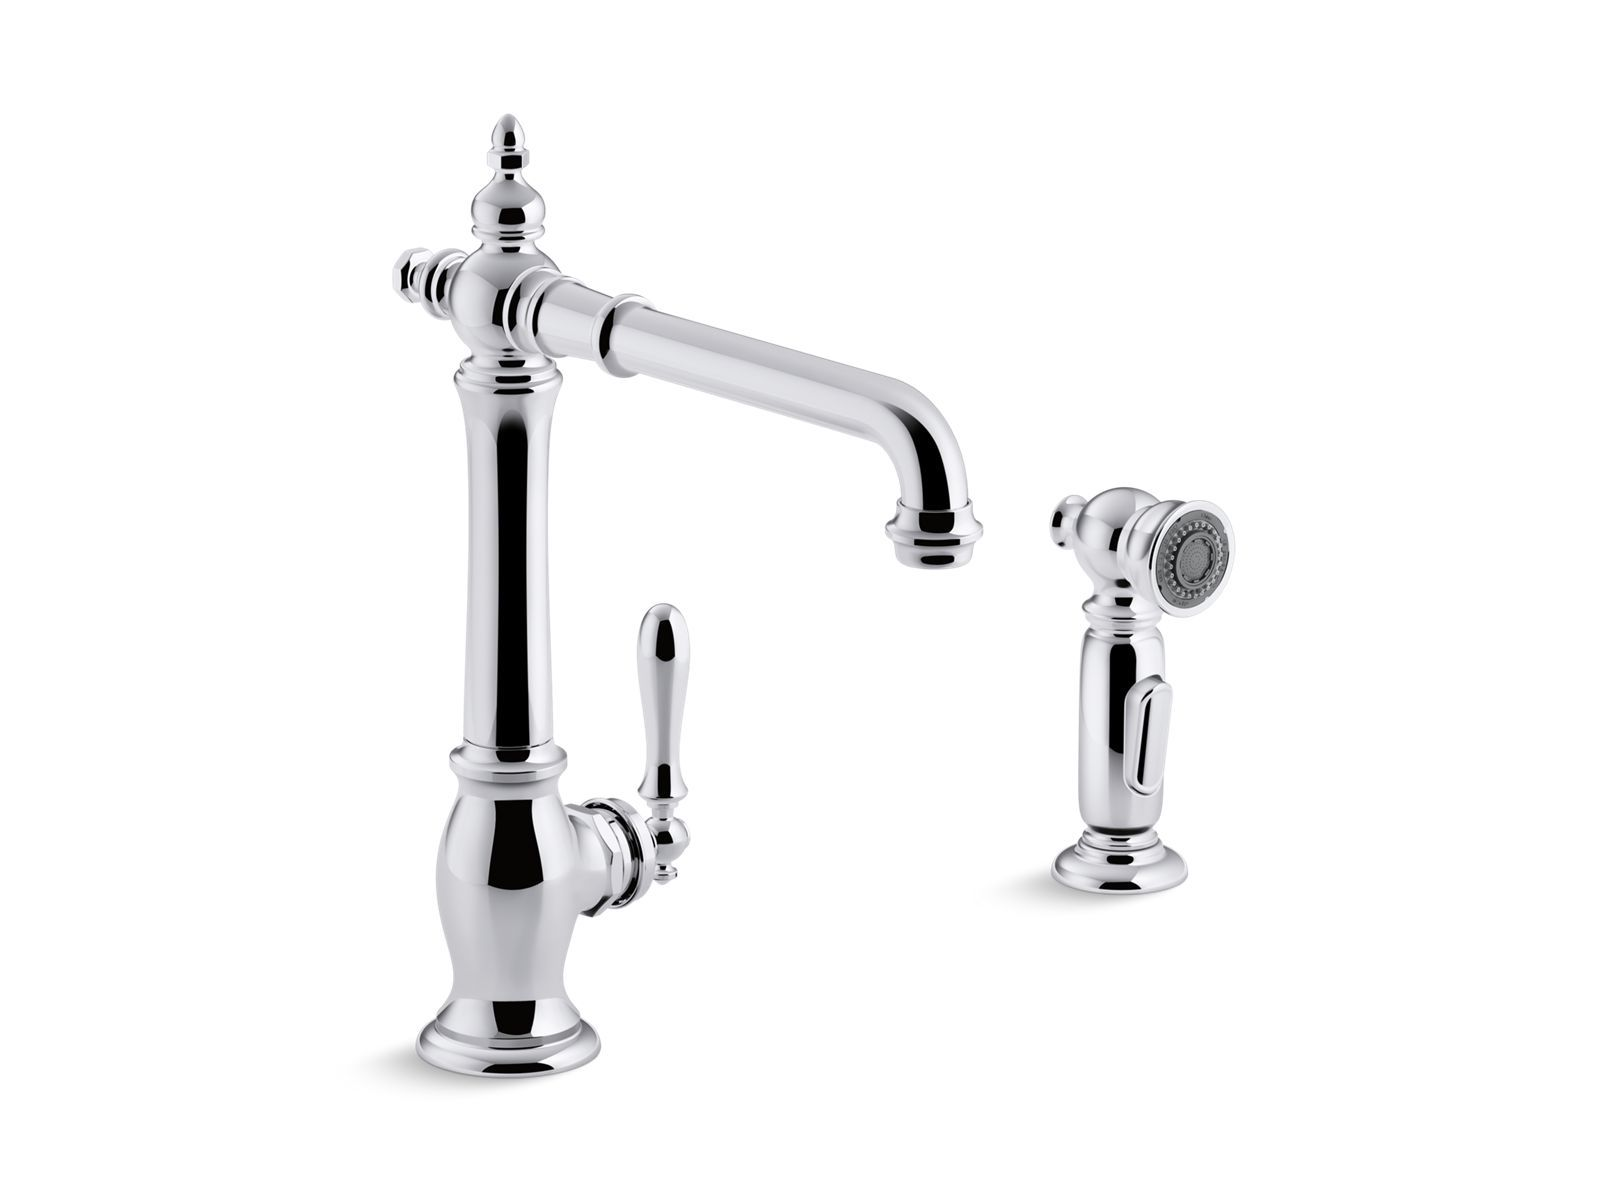 K Artifacts Kitchen Faucet with Sidespray